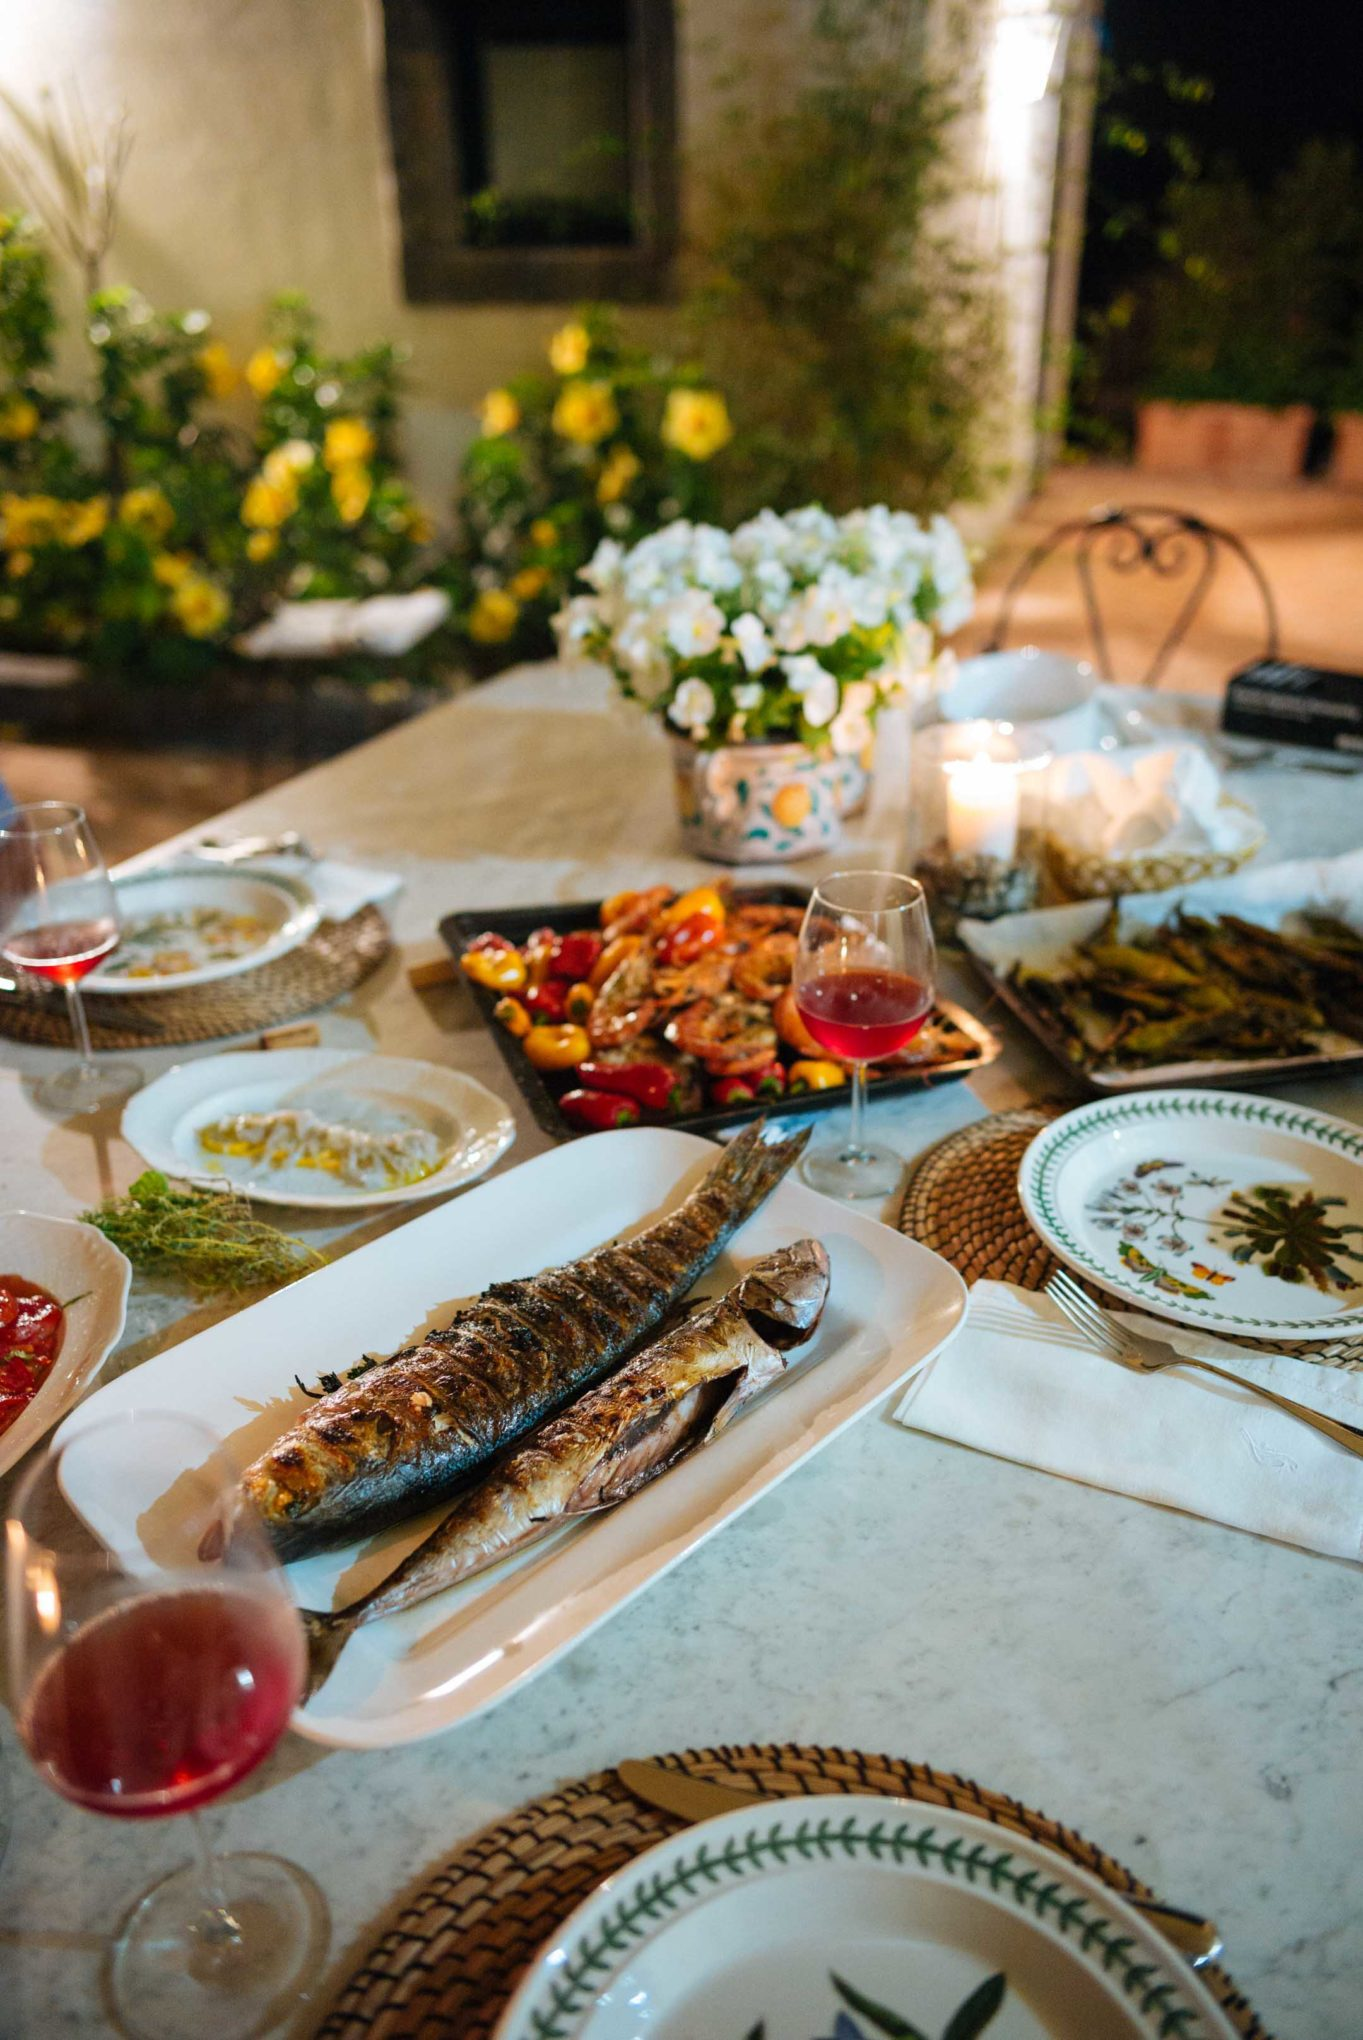 The Taste SF grills dinner at our villa in Sicily Italy.